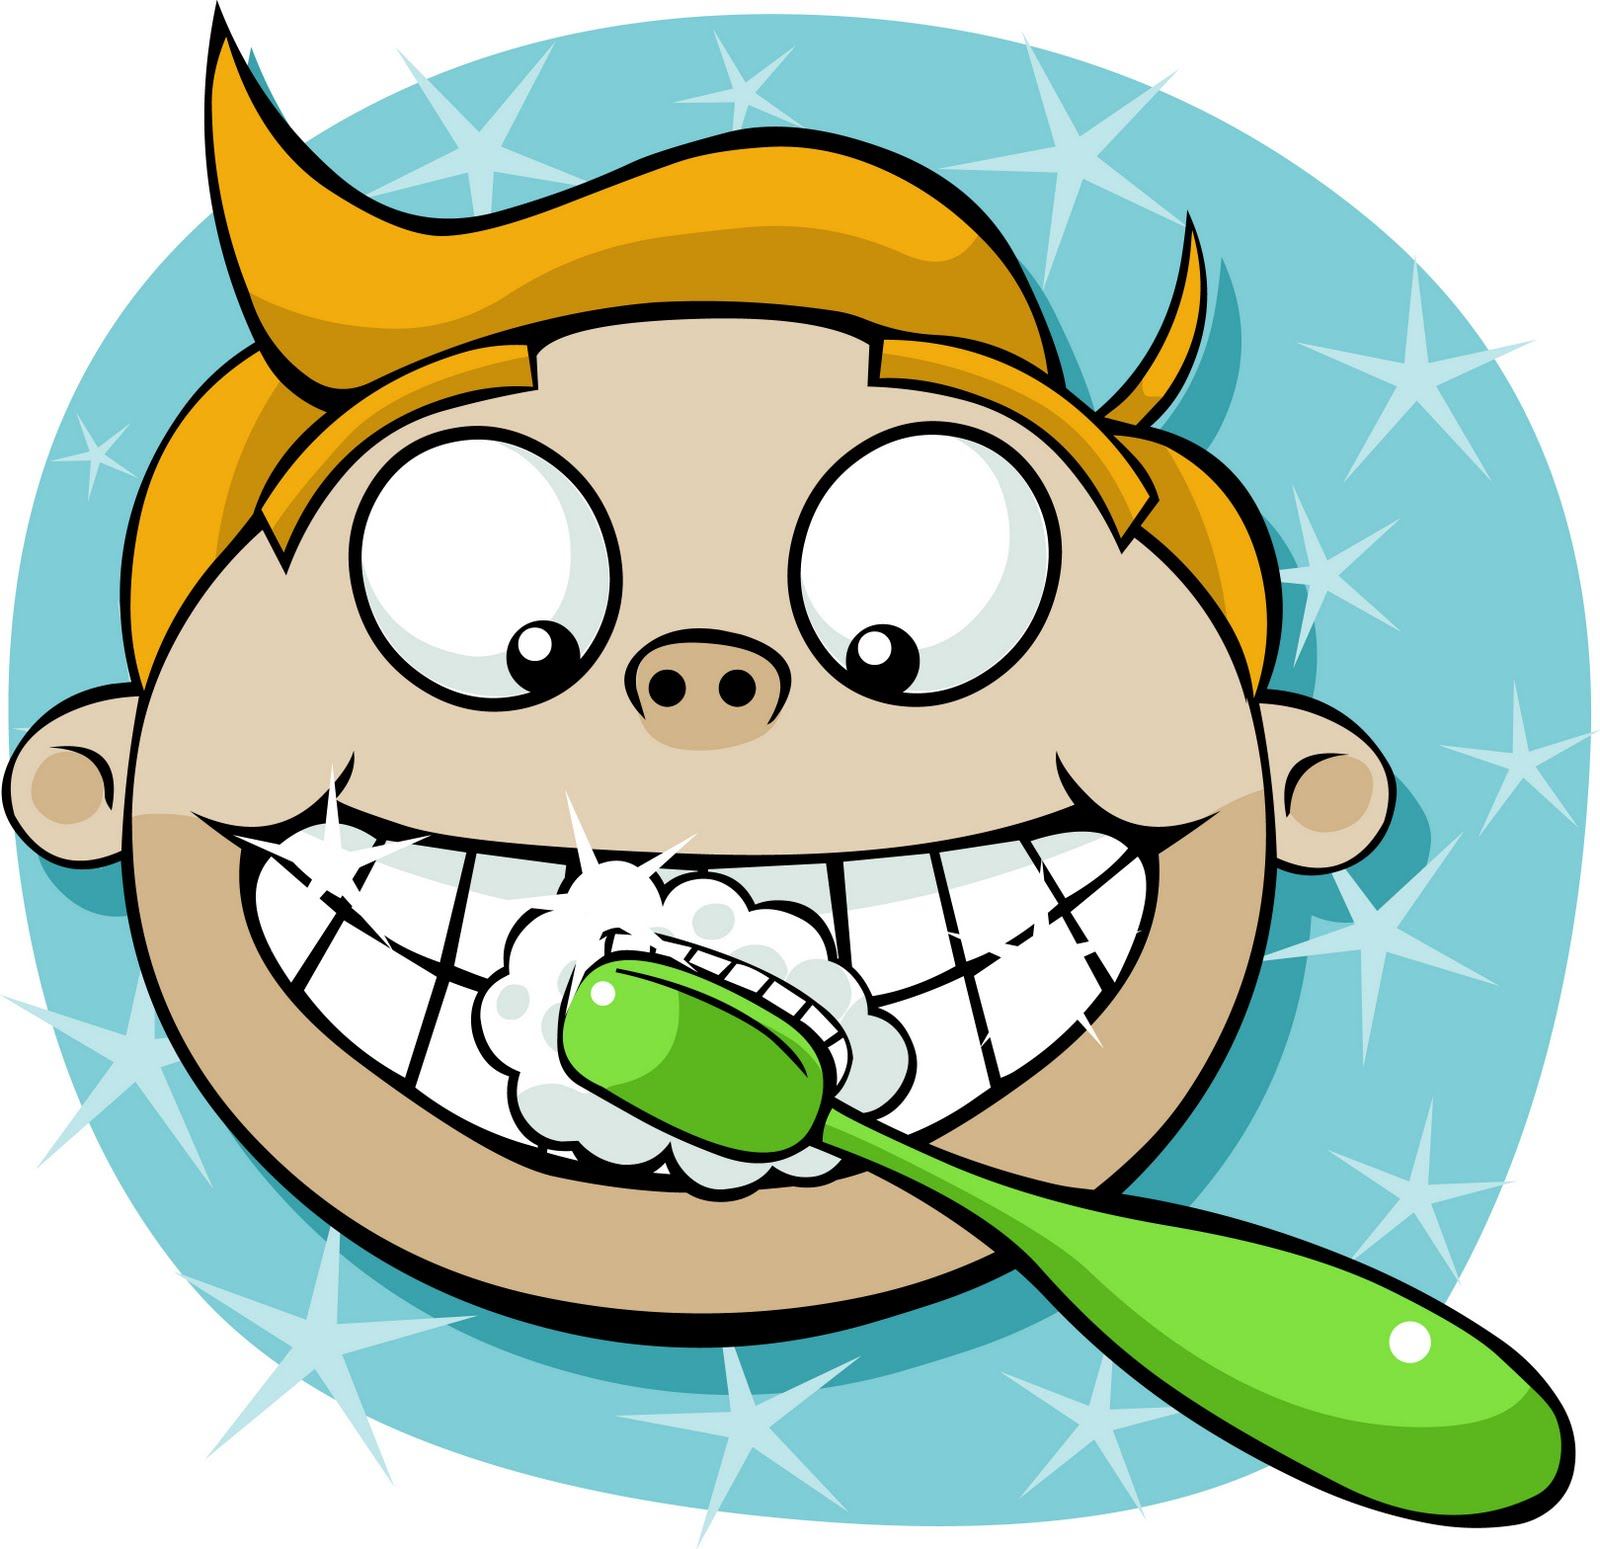 Brush your teeth pictures clipart picture library download Free Brushing Teeth Cliparts, Download Free Clip Art, Free Clip Art ... picture library download